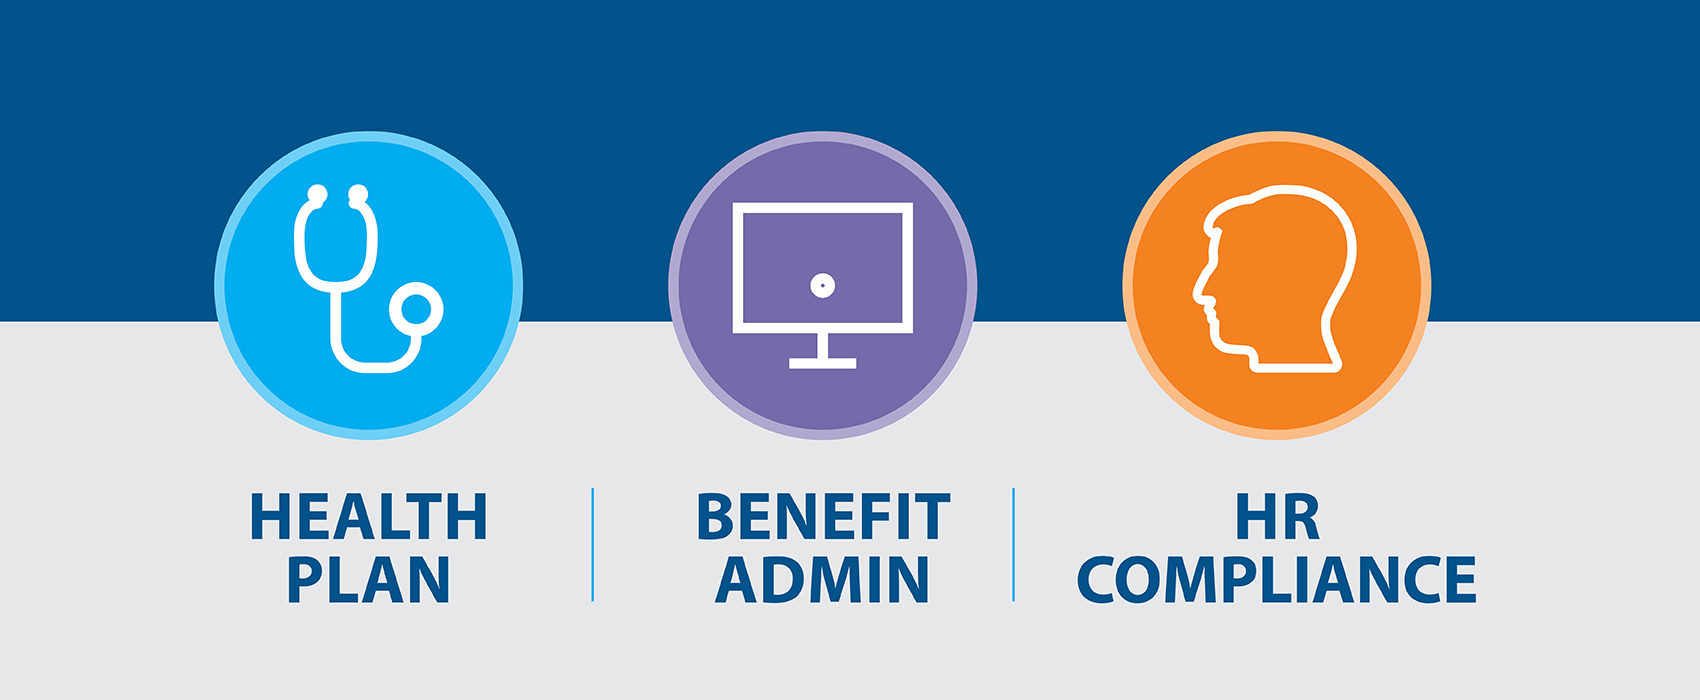 Health Plan - Benefit Admin - HR Support